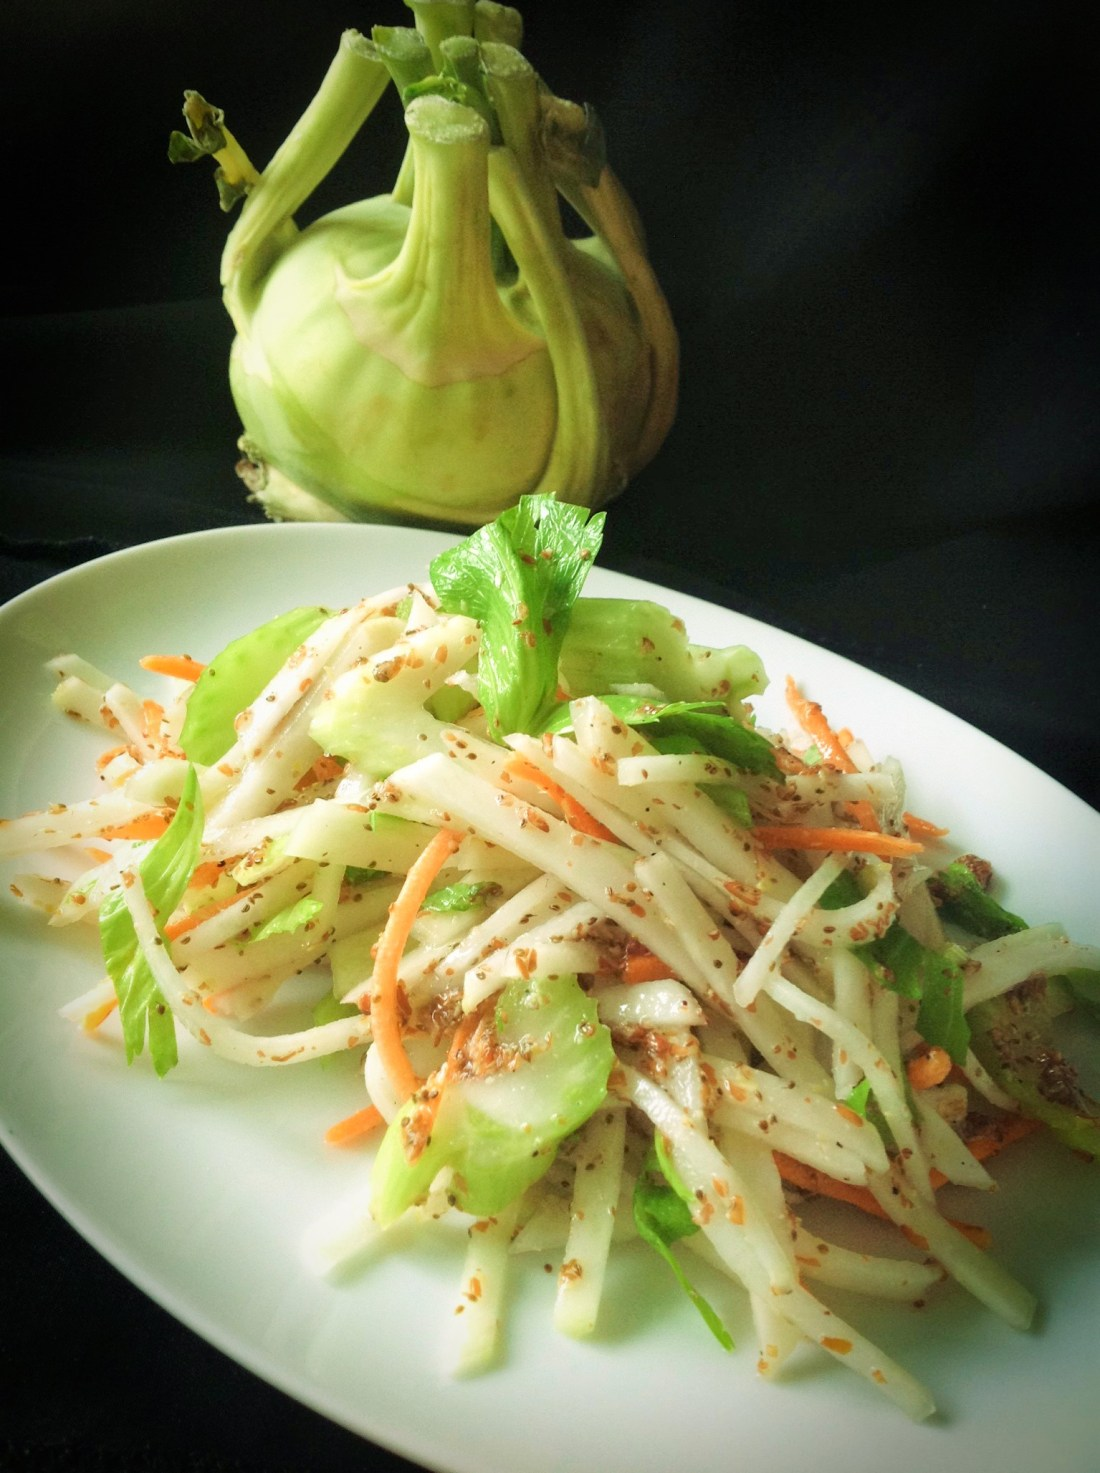 Easy, Light Kohlrabi Slaw - Healthy, Plant-Based, Gluten-Free, Oil-Free, Vegan Summer Salad Recipe from Plants-Rule